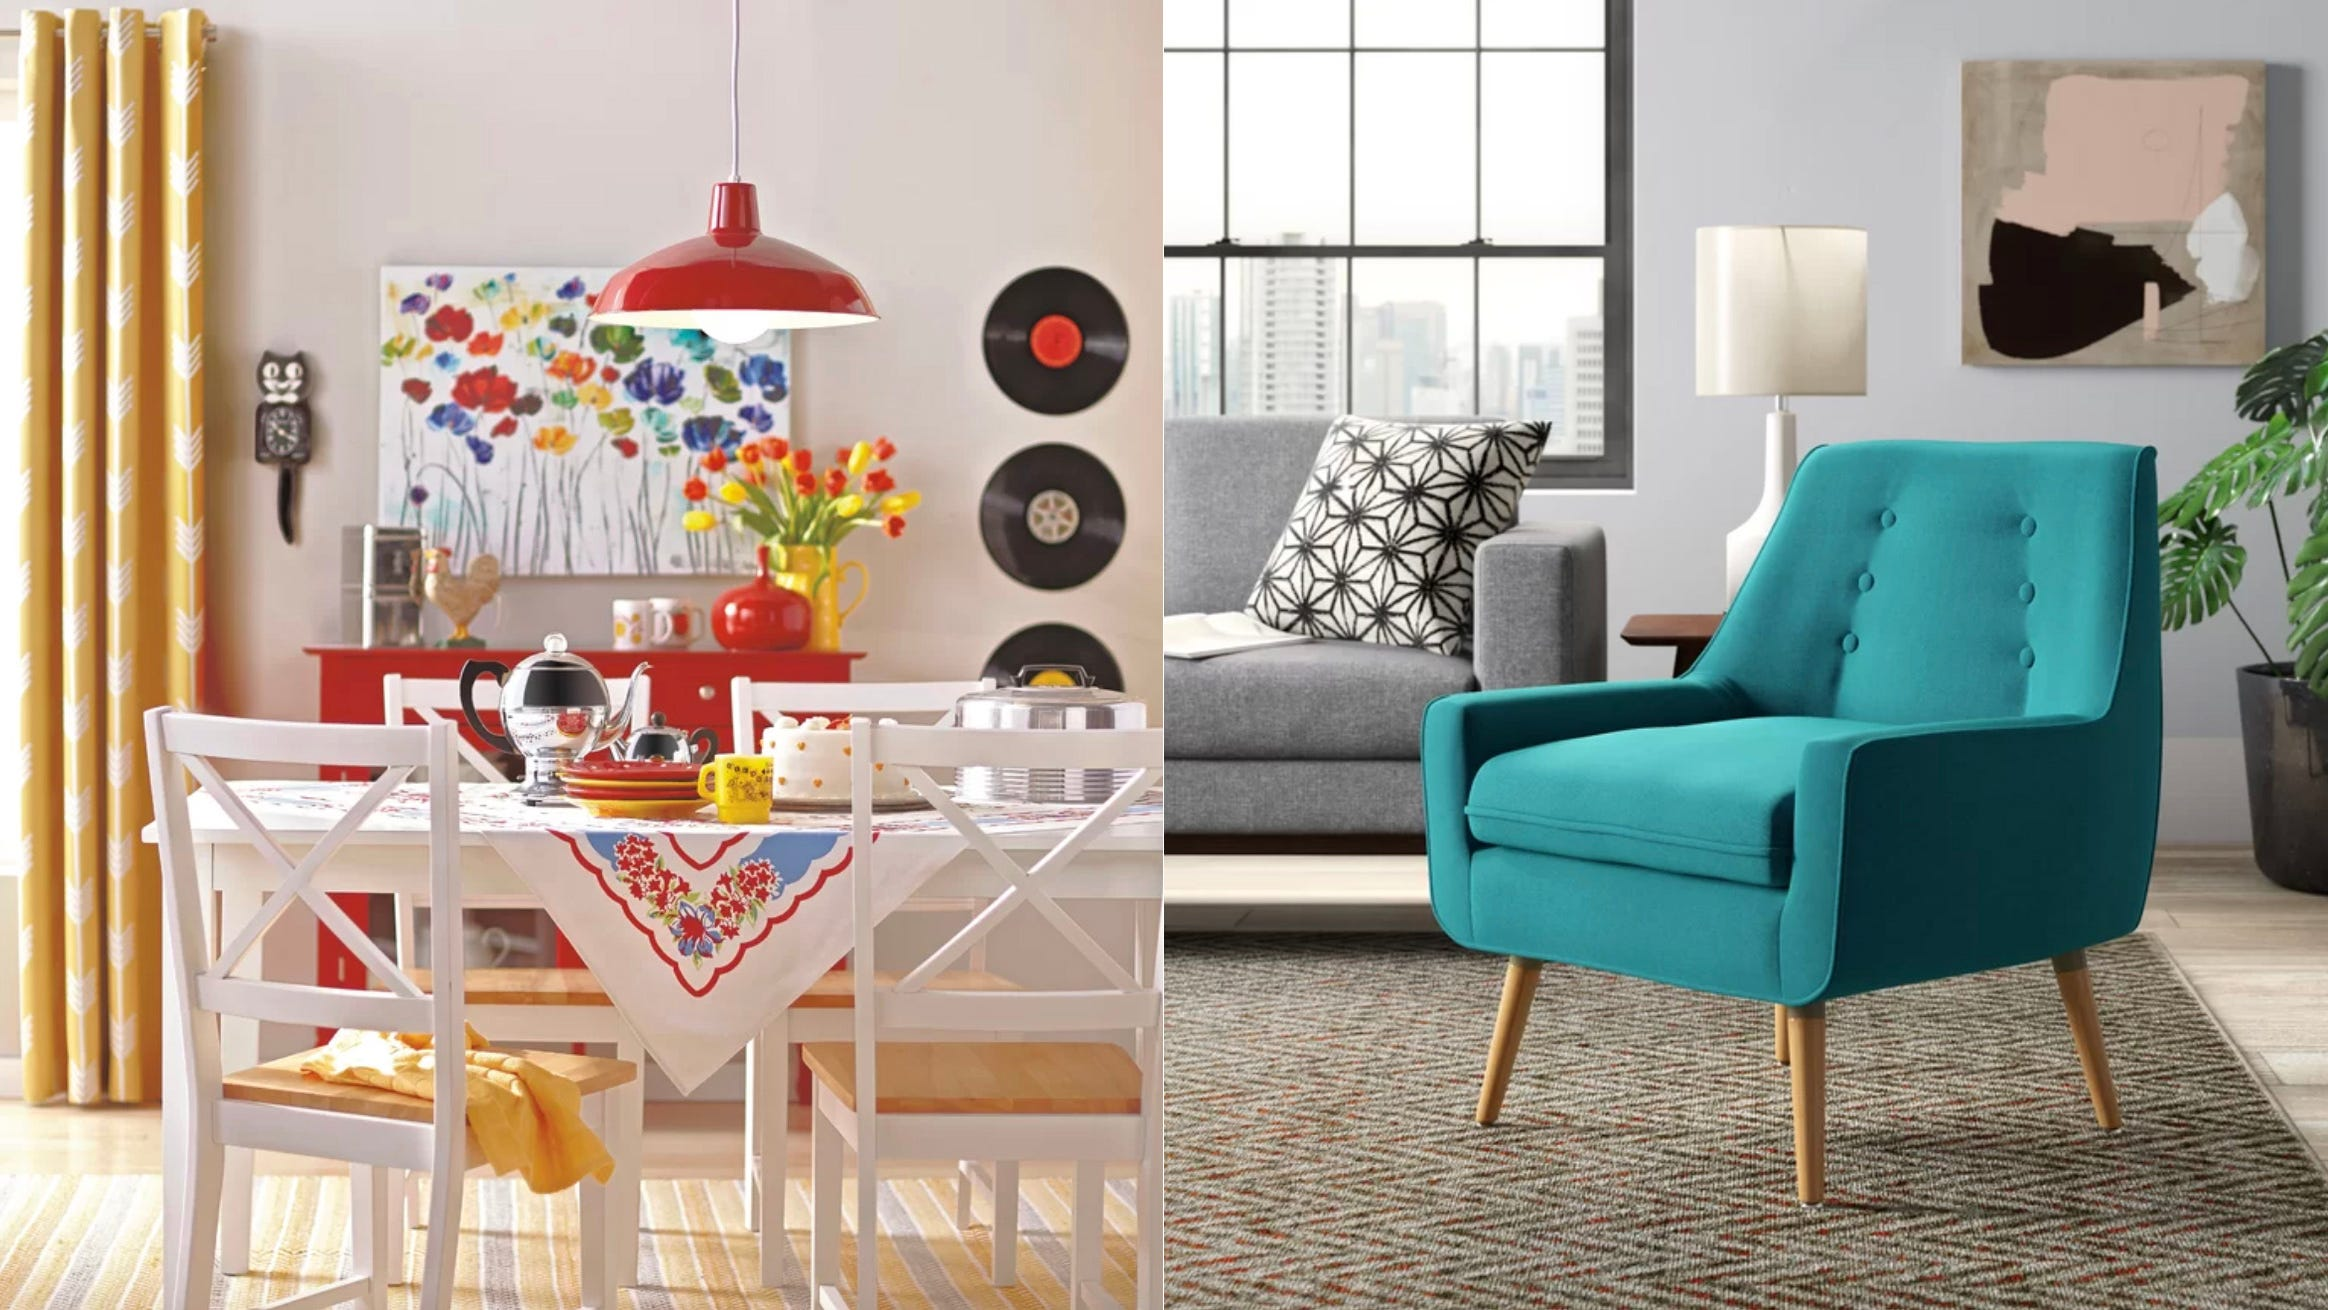 This Wayfair clearance sale is a great chance to get furniture for less